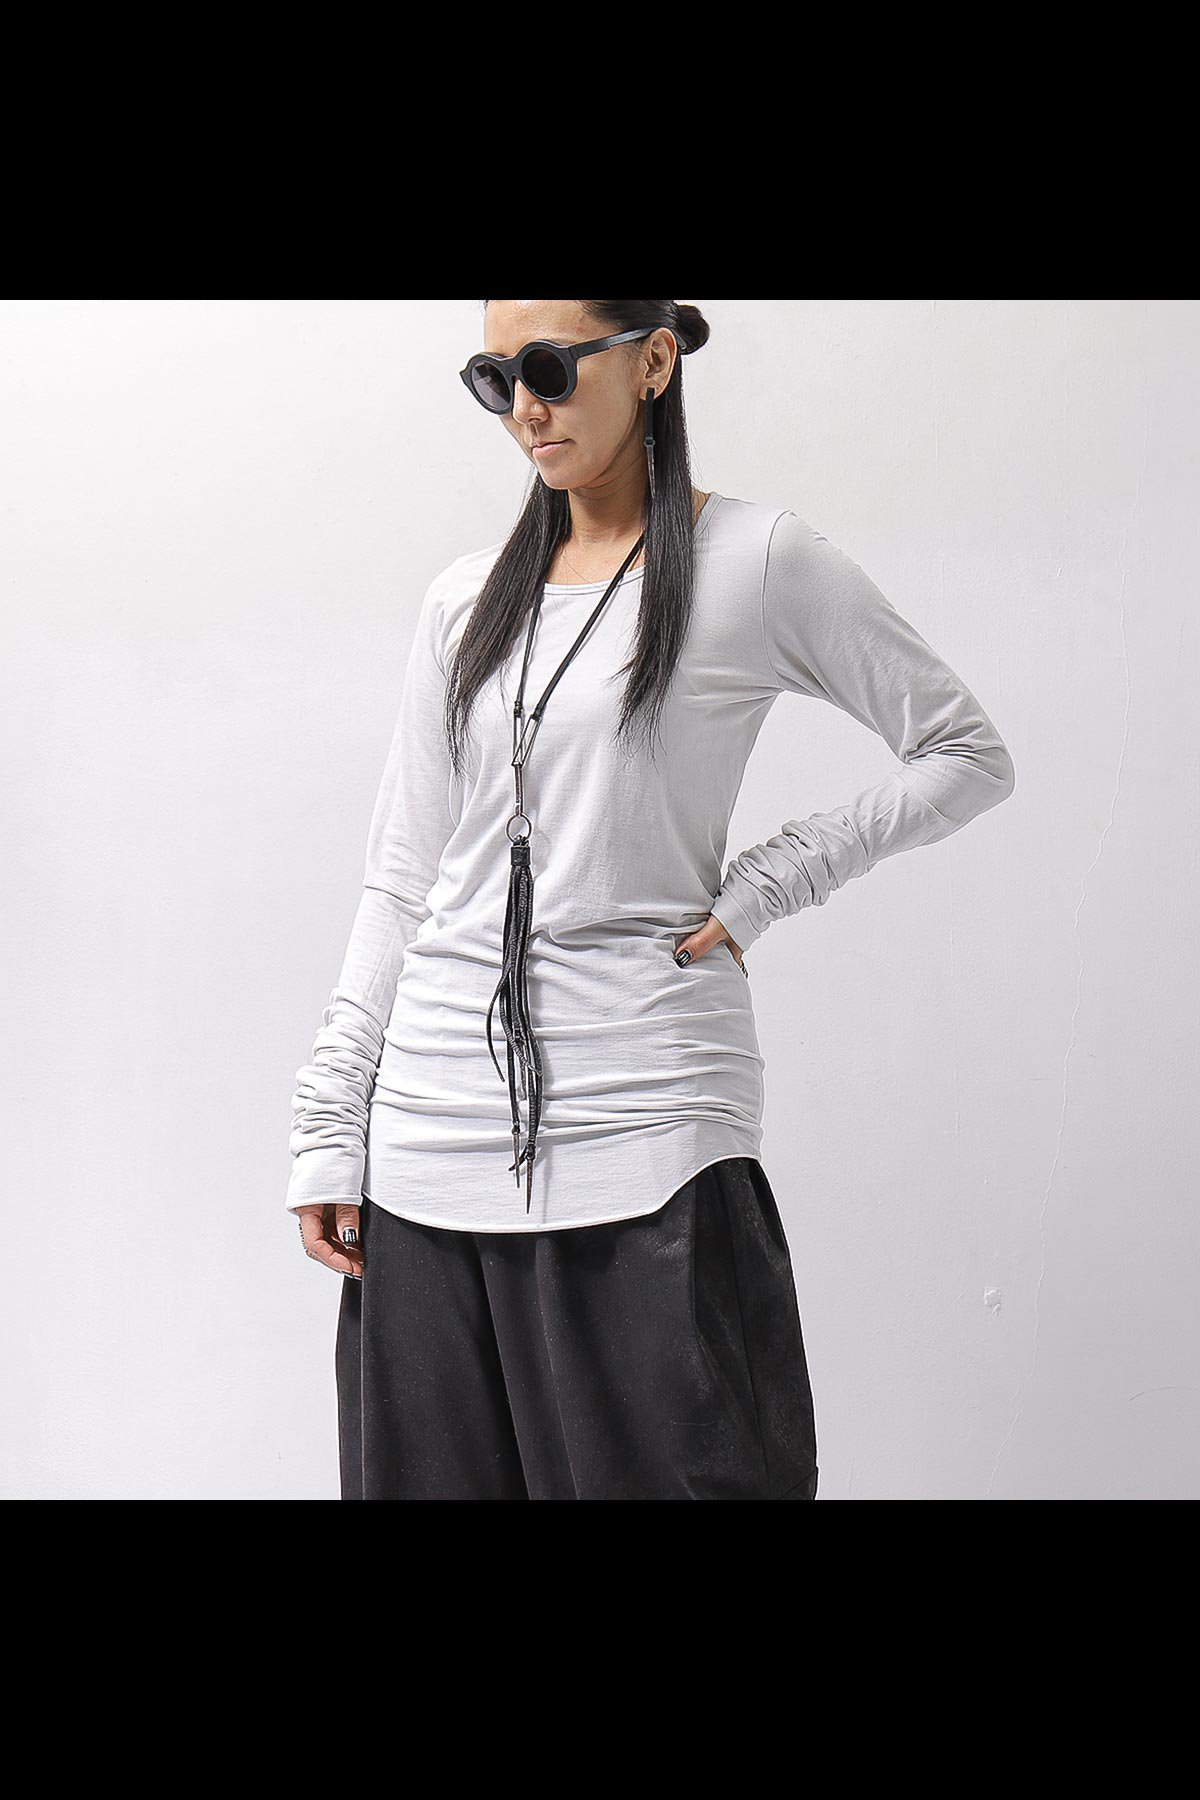 <img class='new_mark_img1' src='https://img.shop-pro.jp/img/new/icons8.gif' style='border:none;display:inline;margin:0px;padding:0px;width:auto;' />UNISEX STRONG COTTON LONG SLEEVE TOPS 256 0506_BIRCH